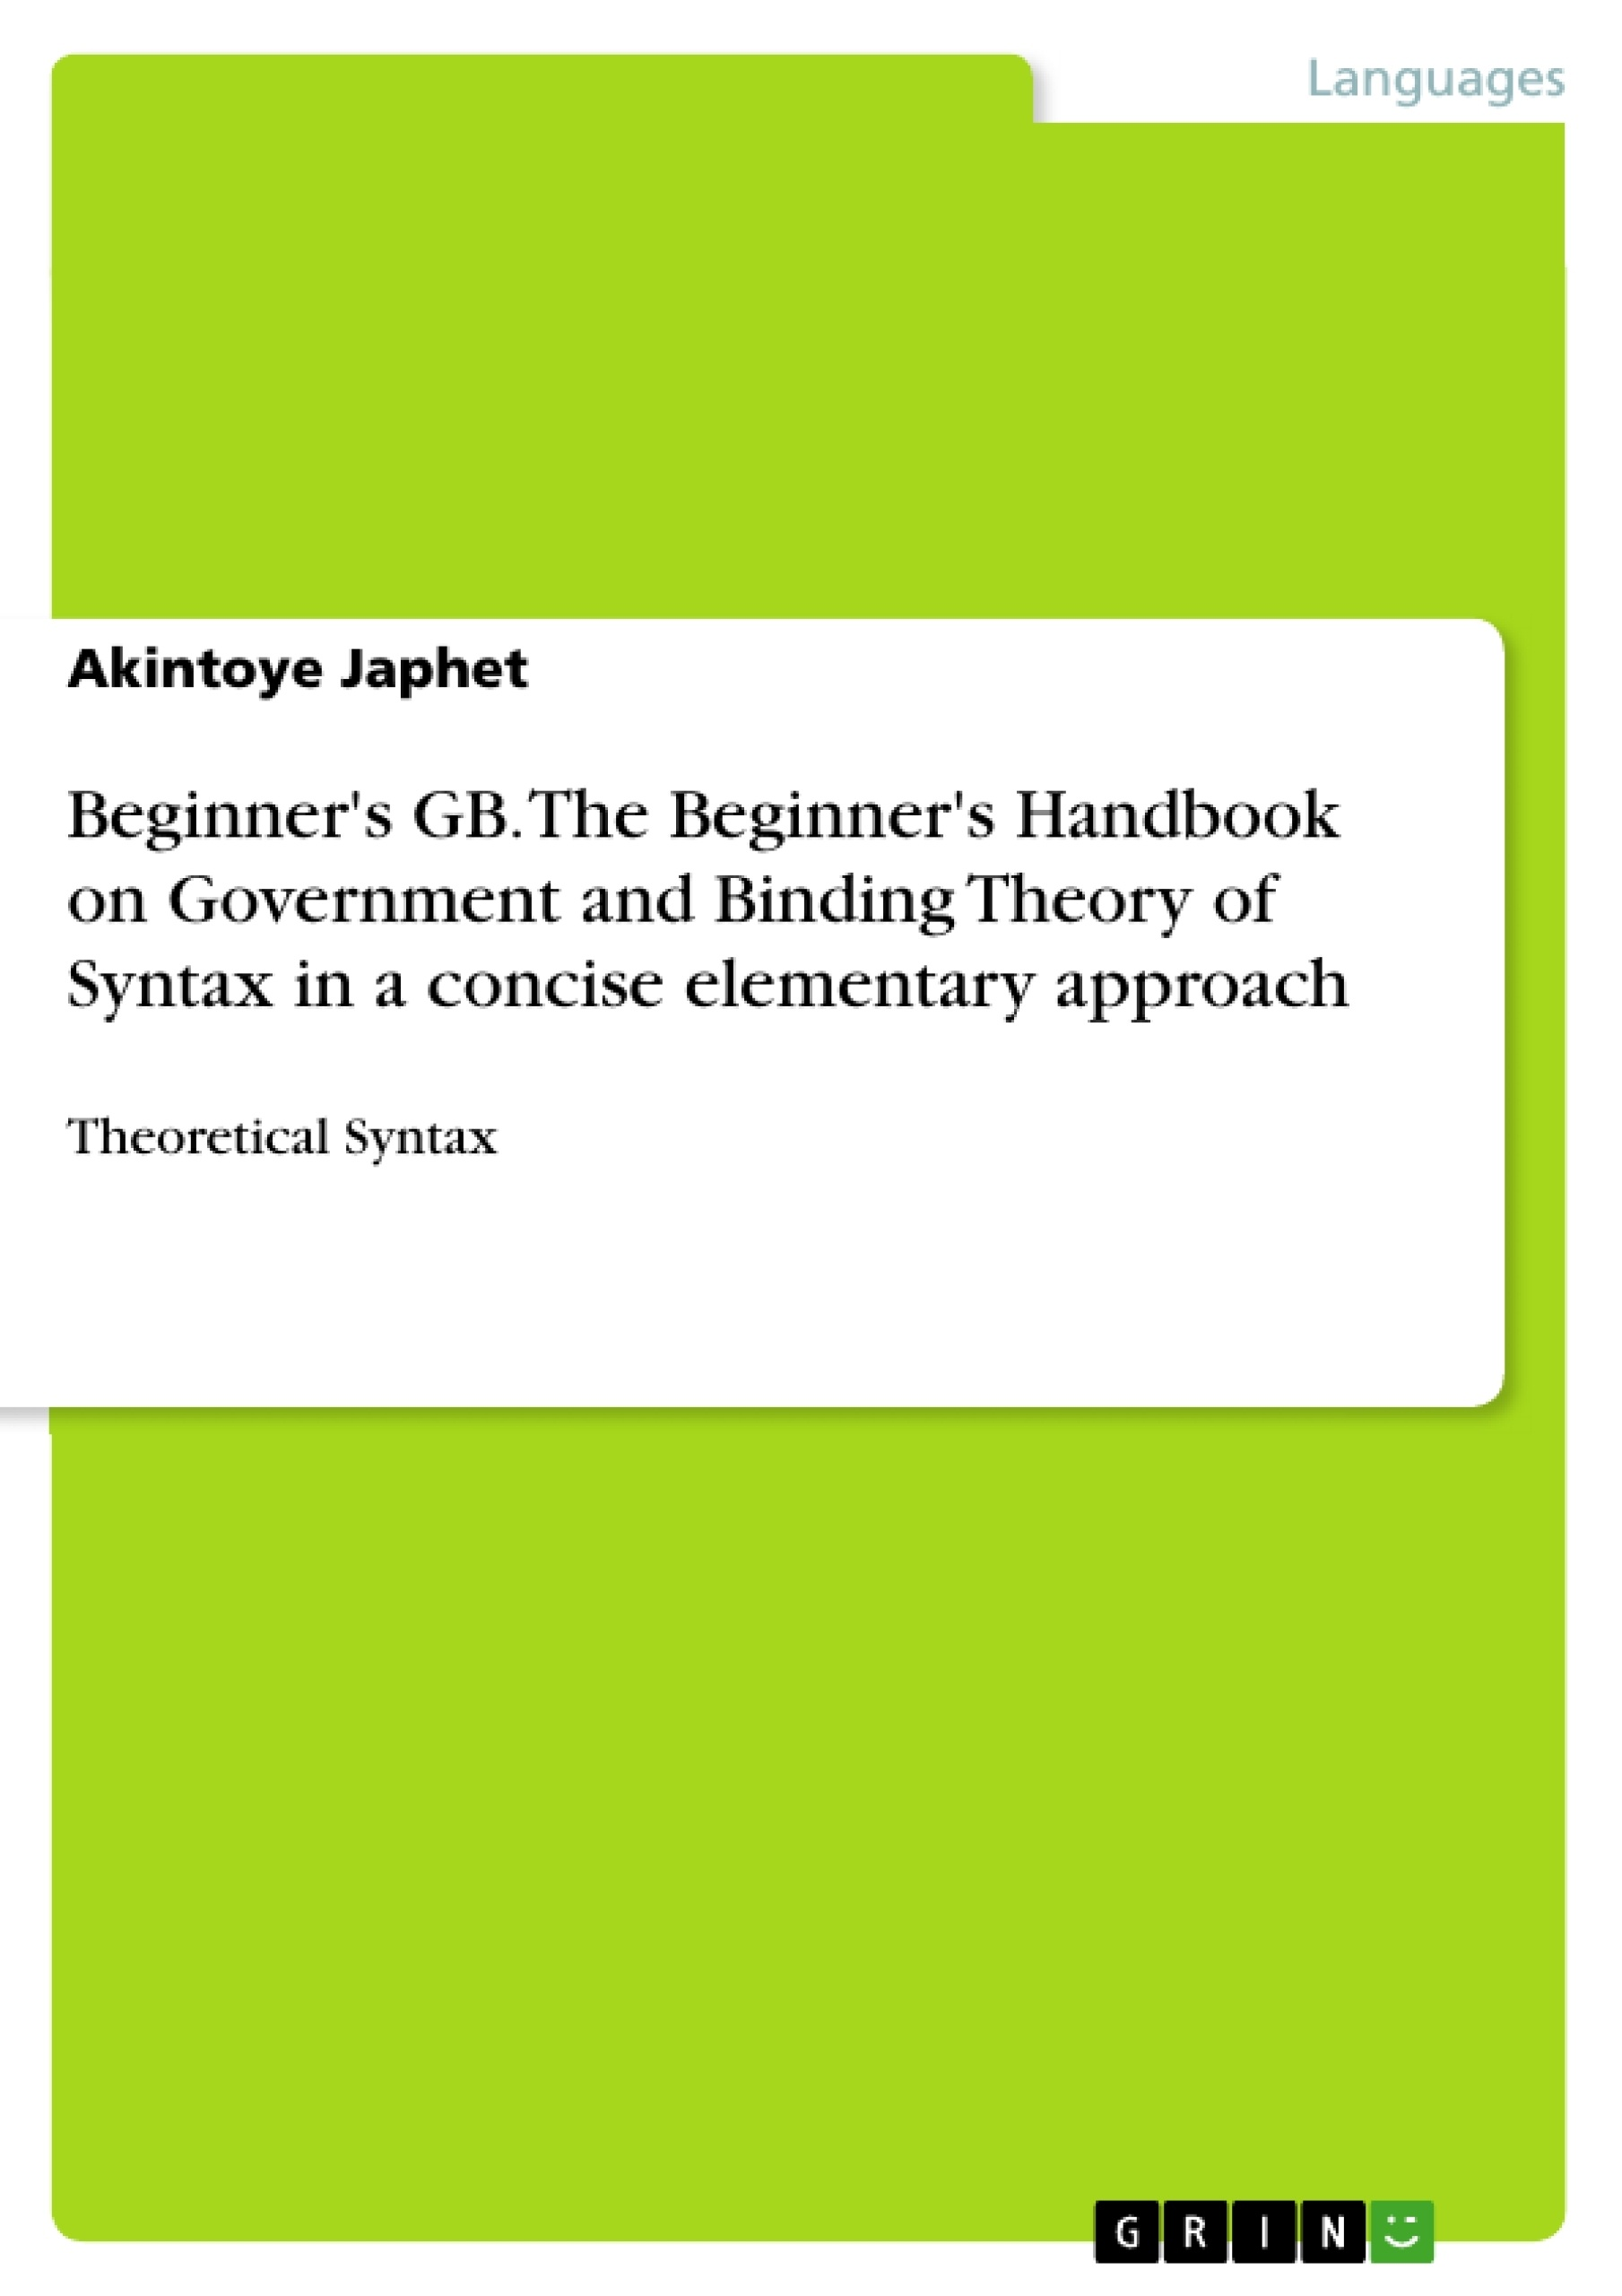 Title: Beginner's GB. The Beginner's Handbook on Government and Binding Theory of Syntax in a concise elementary approach